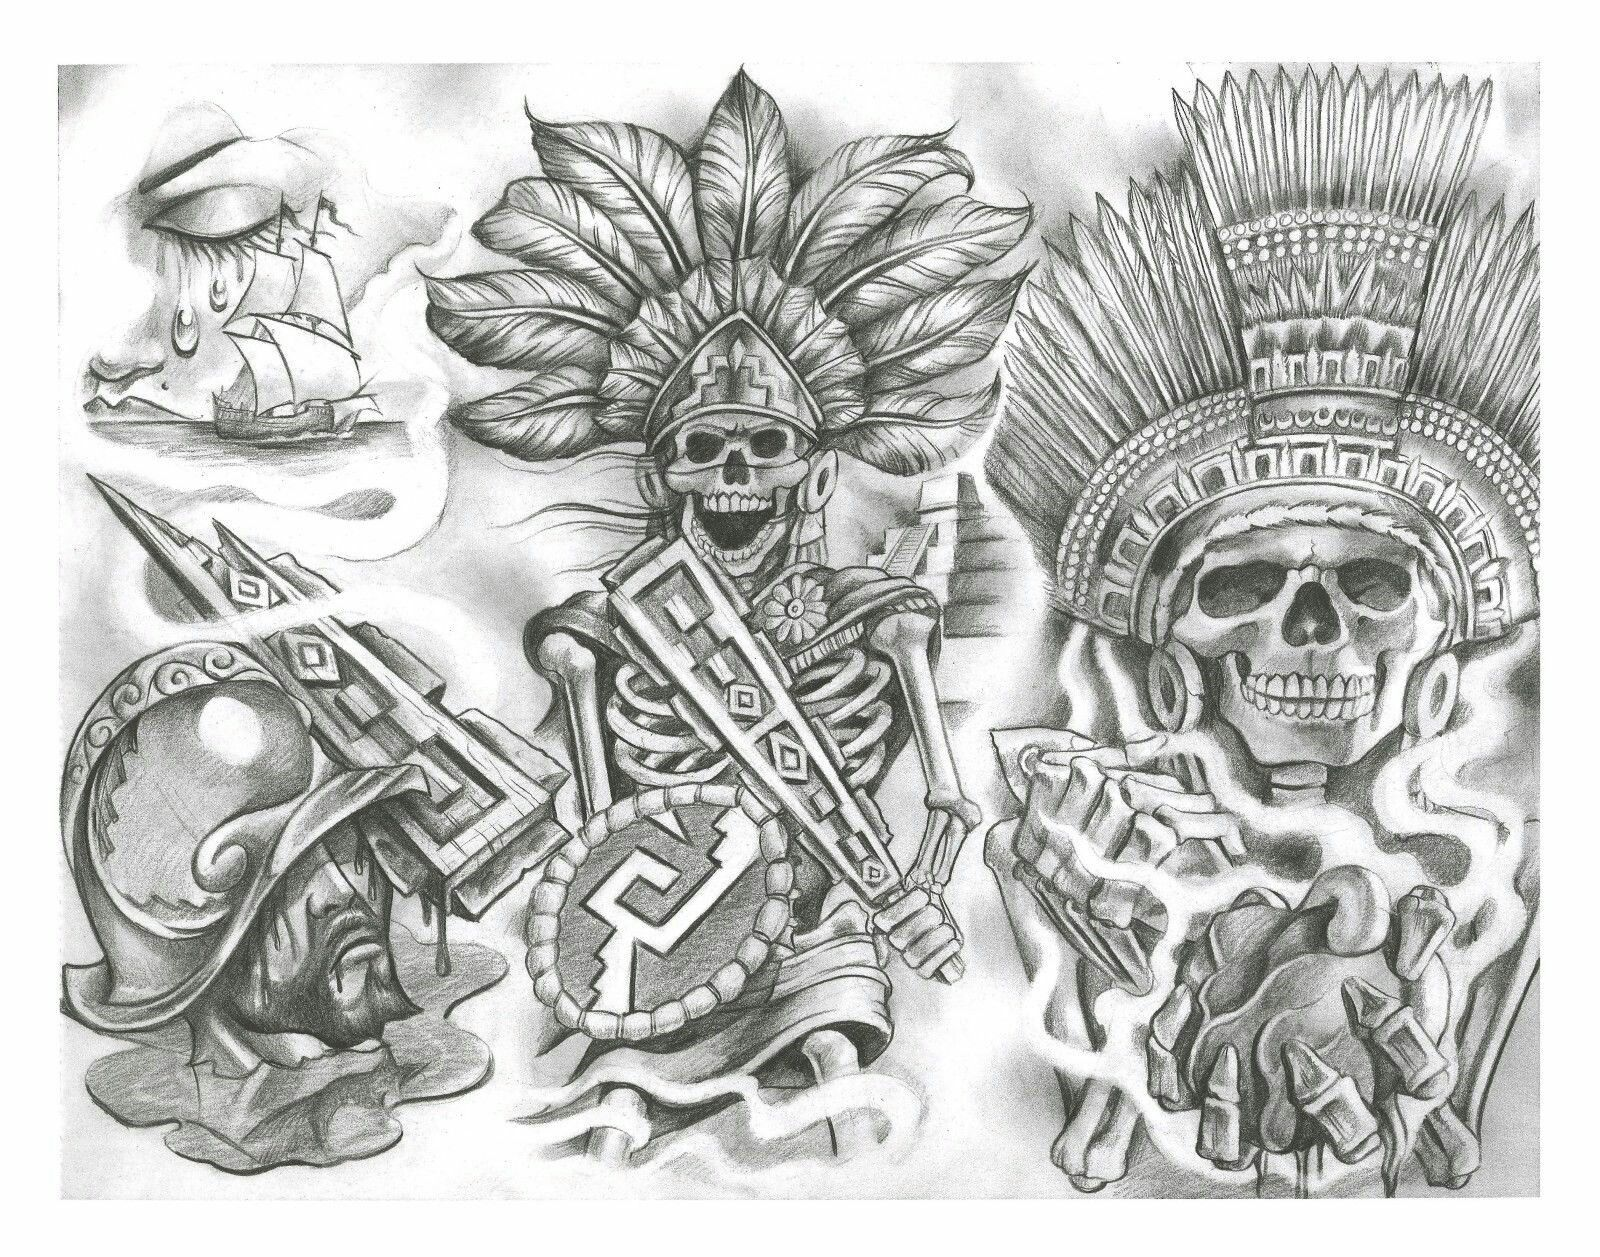 Pin by Kyle Moeses on Tattoo ideas | Pinterest | Tattoo ...